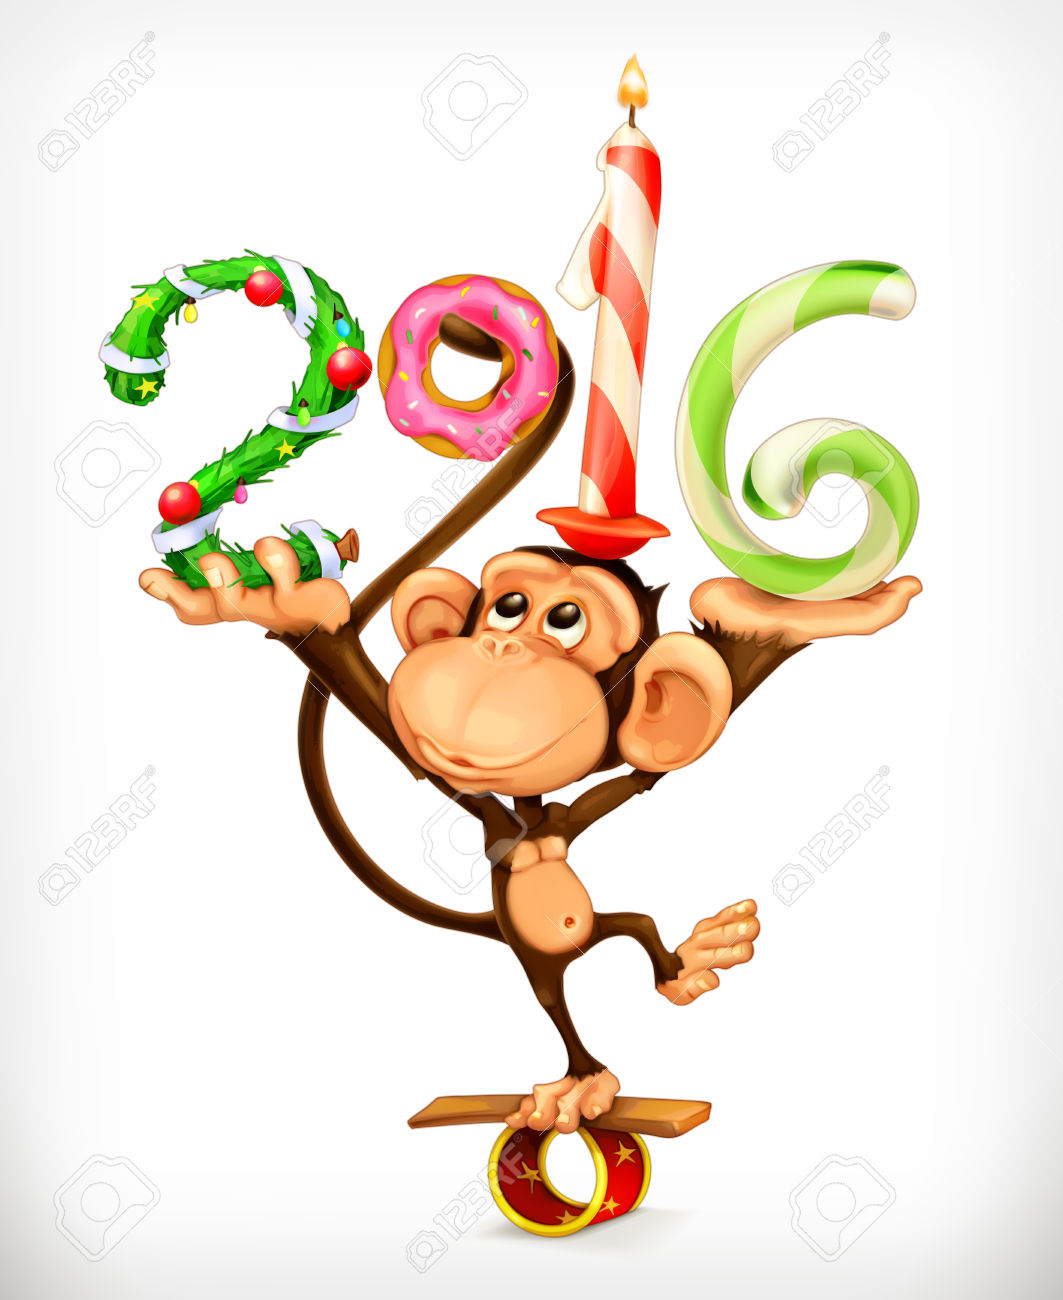 Monkey clipart icon new year clip art library download New Year, Monkey Vector Icon Royalty Free Cliparts, Vectors, And ... clip art library download